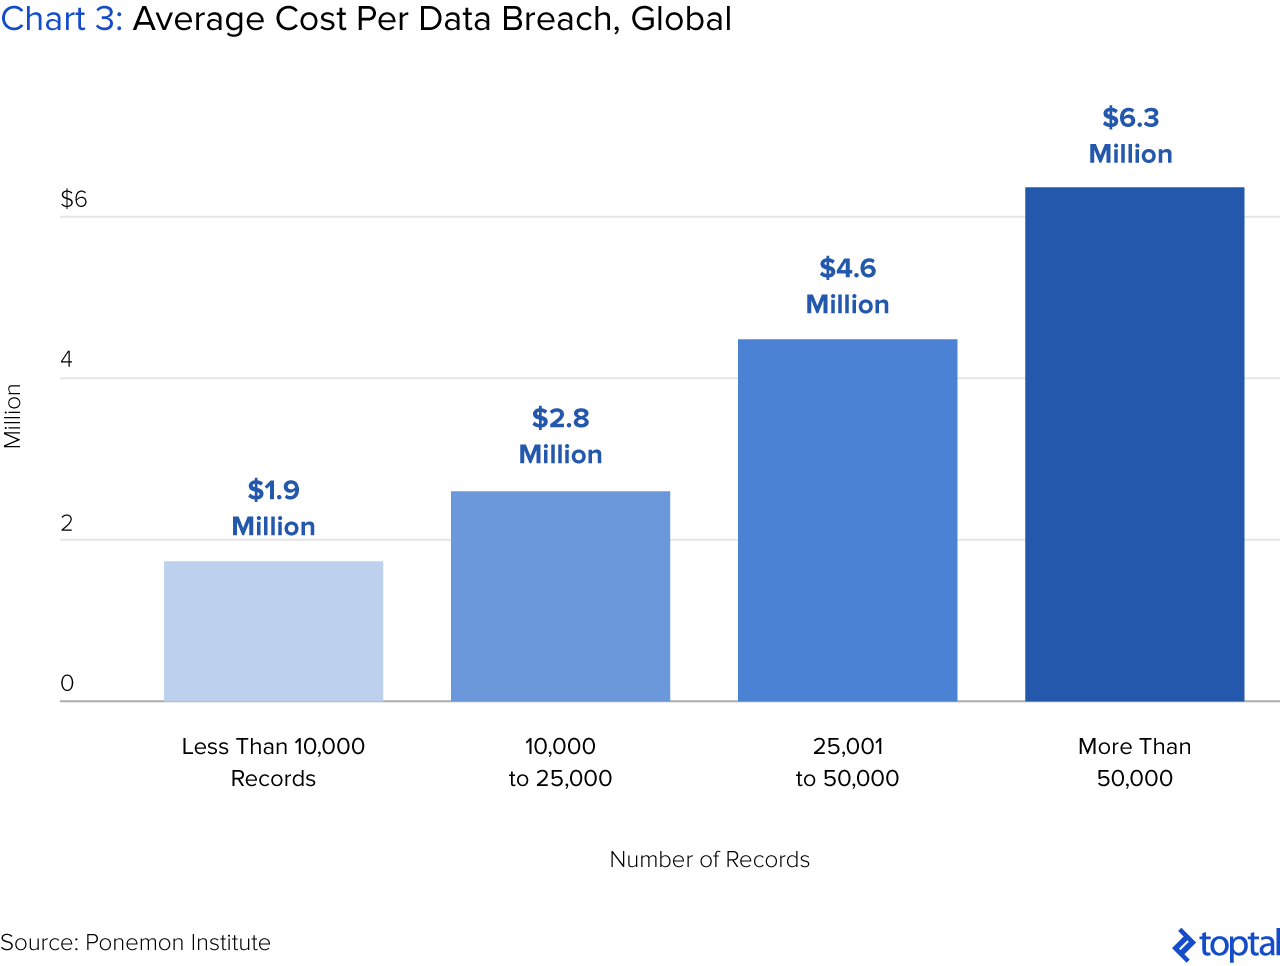 Chart 3: Average Cost Per Data Breach, Global